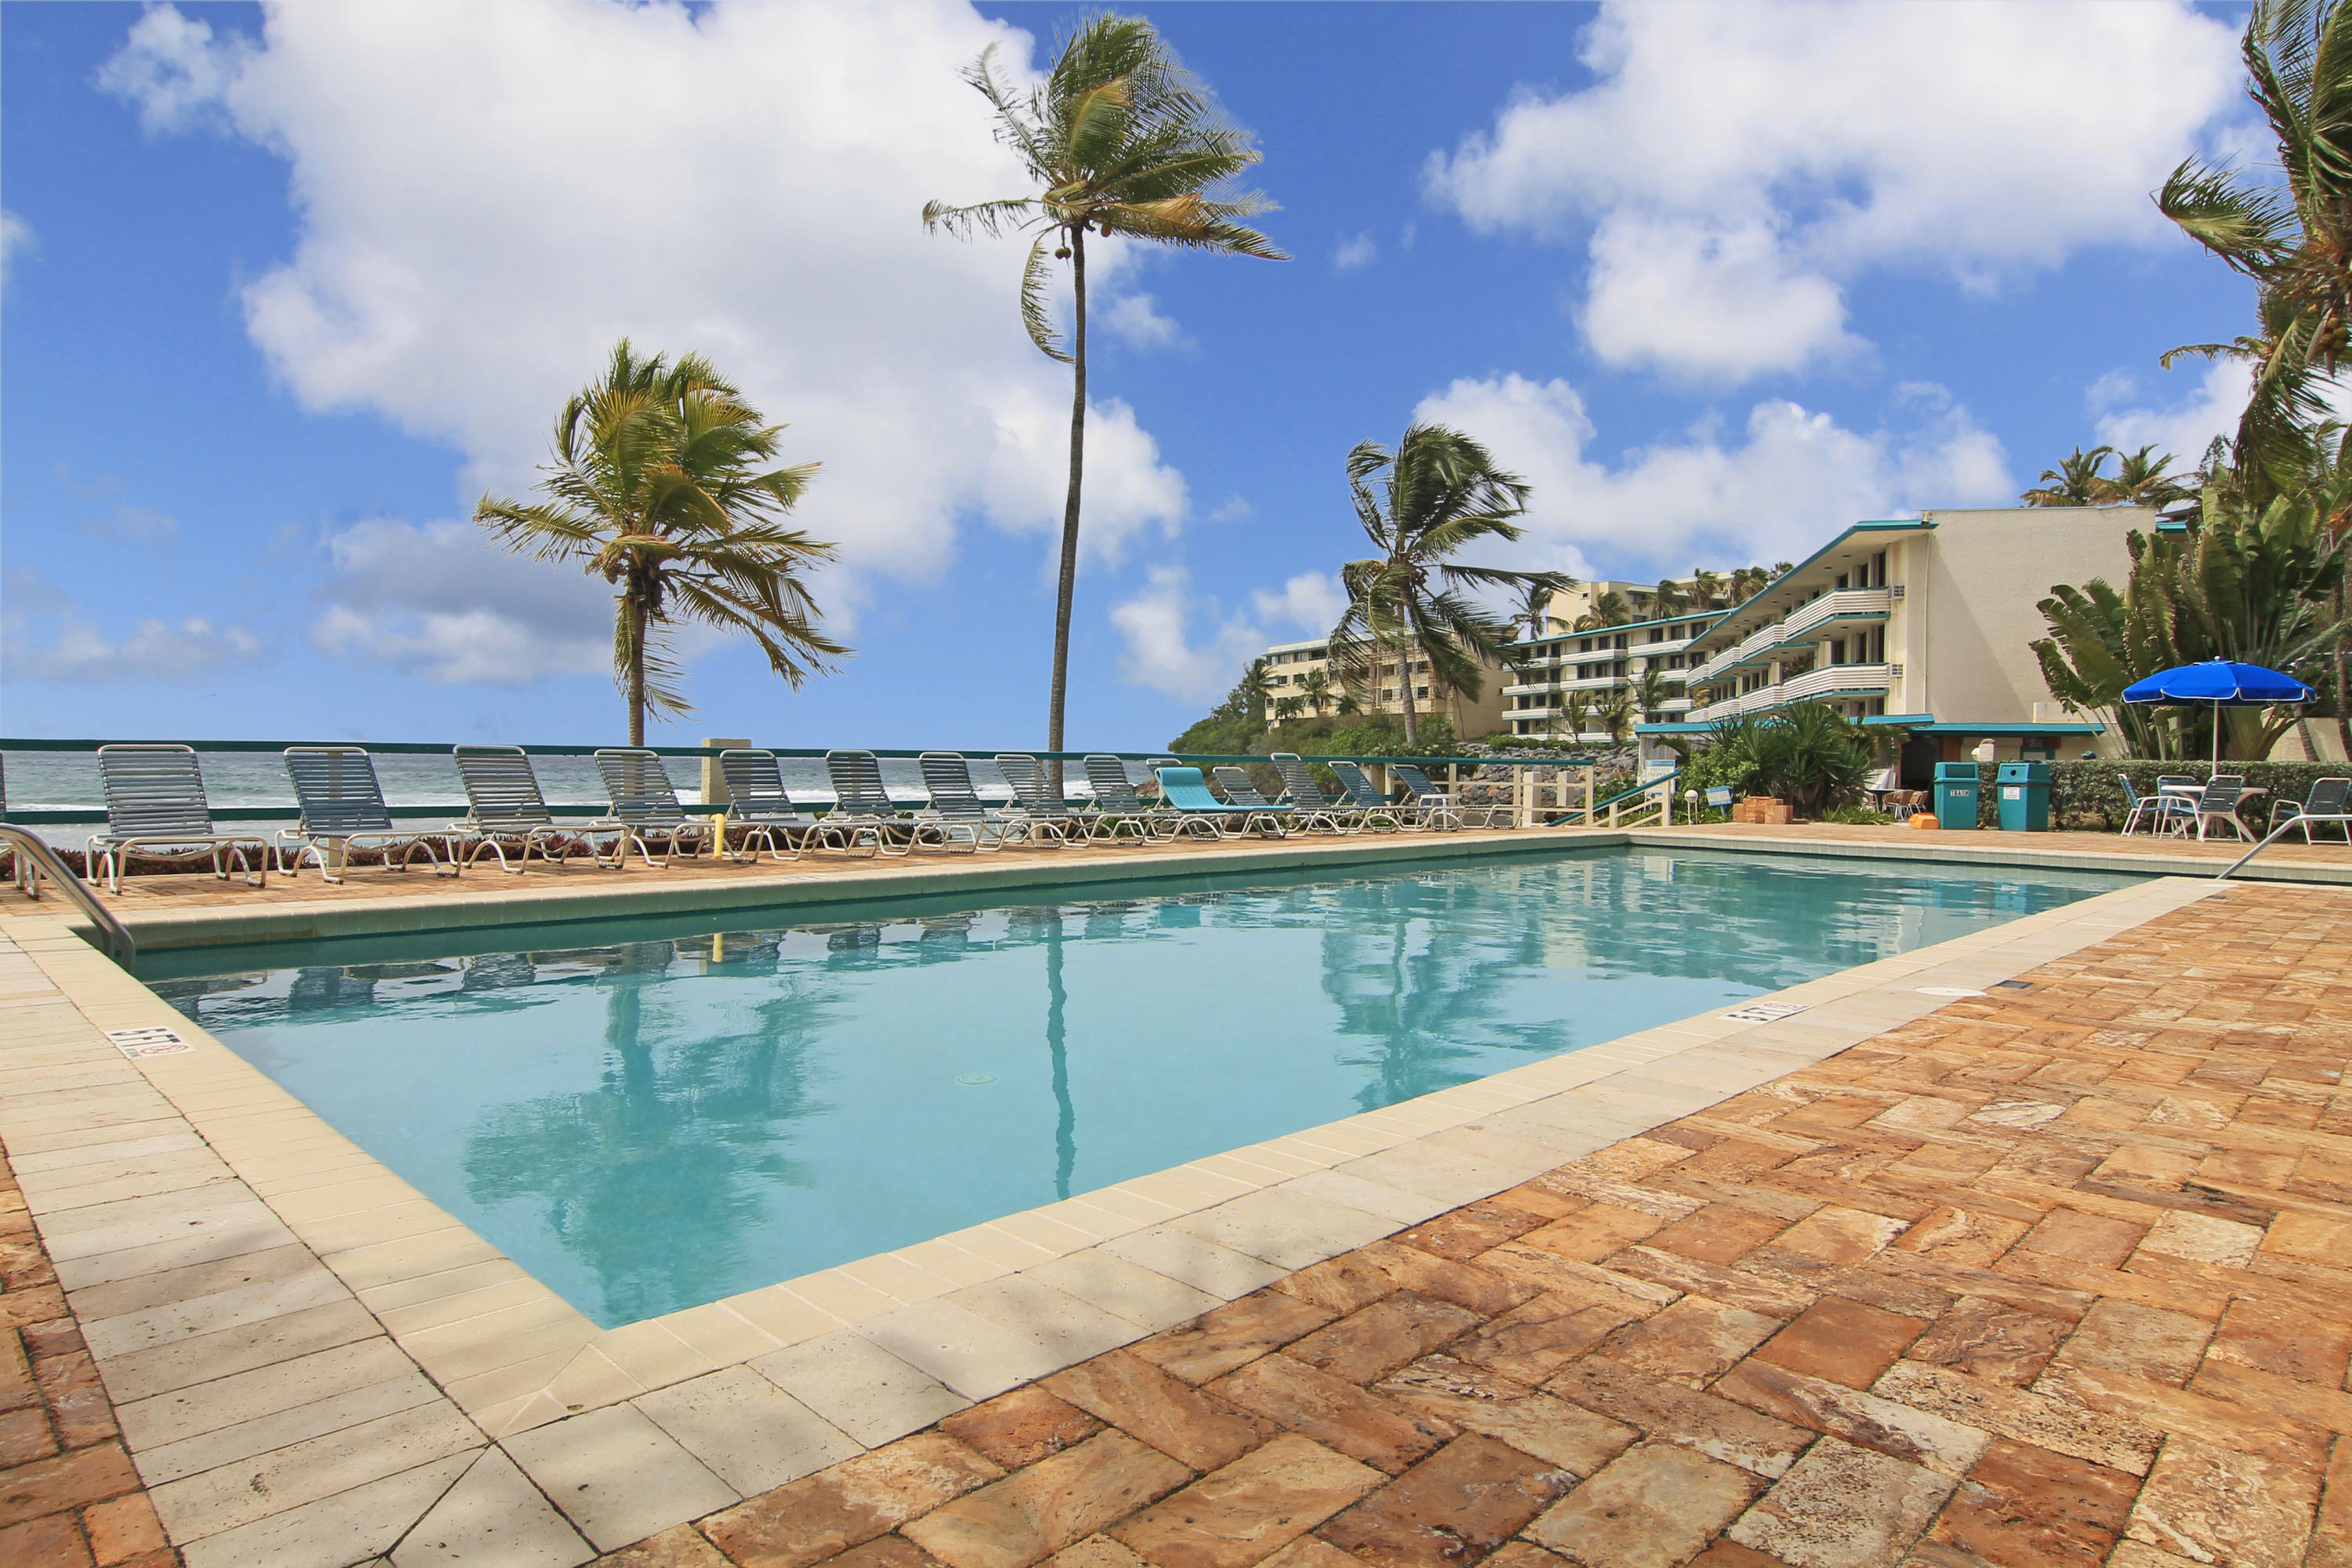 Oceanfront Pool-proxity to Villa 15